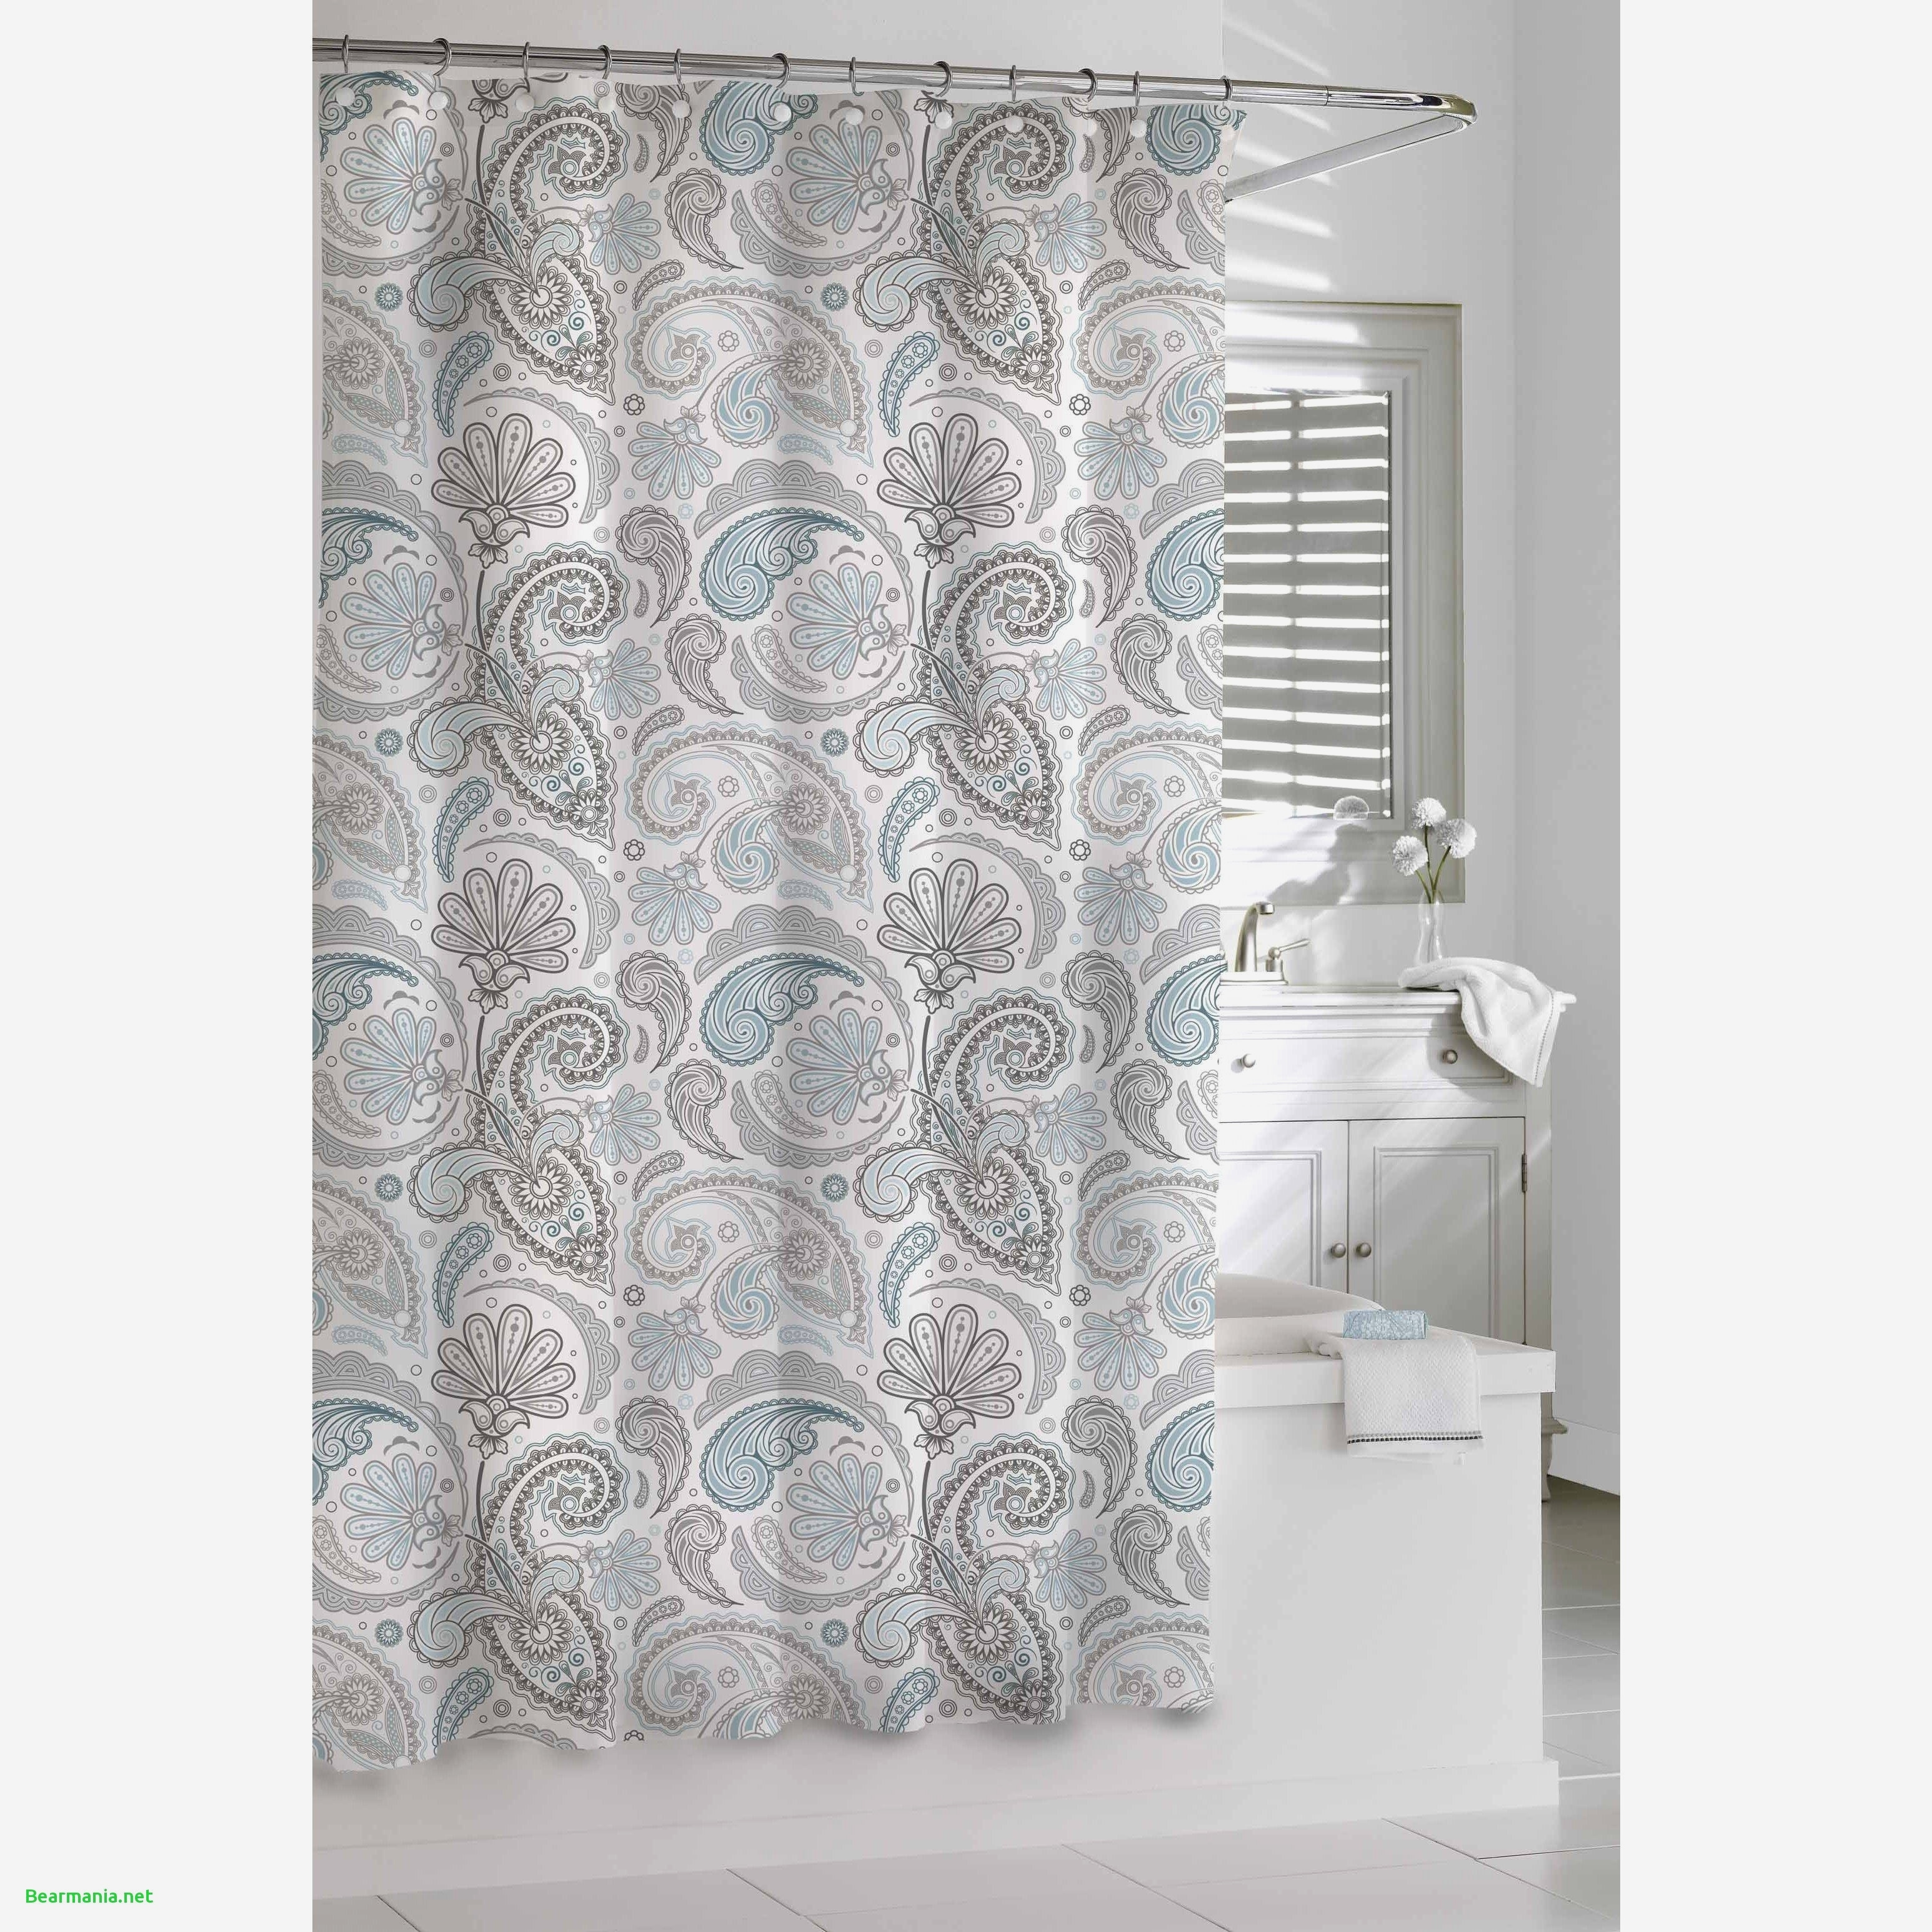 cactus shower curtain multicolor shower curtains - atu-economics intended for Country Style Shower Curtains